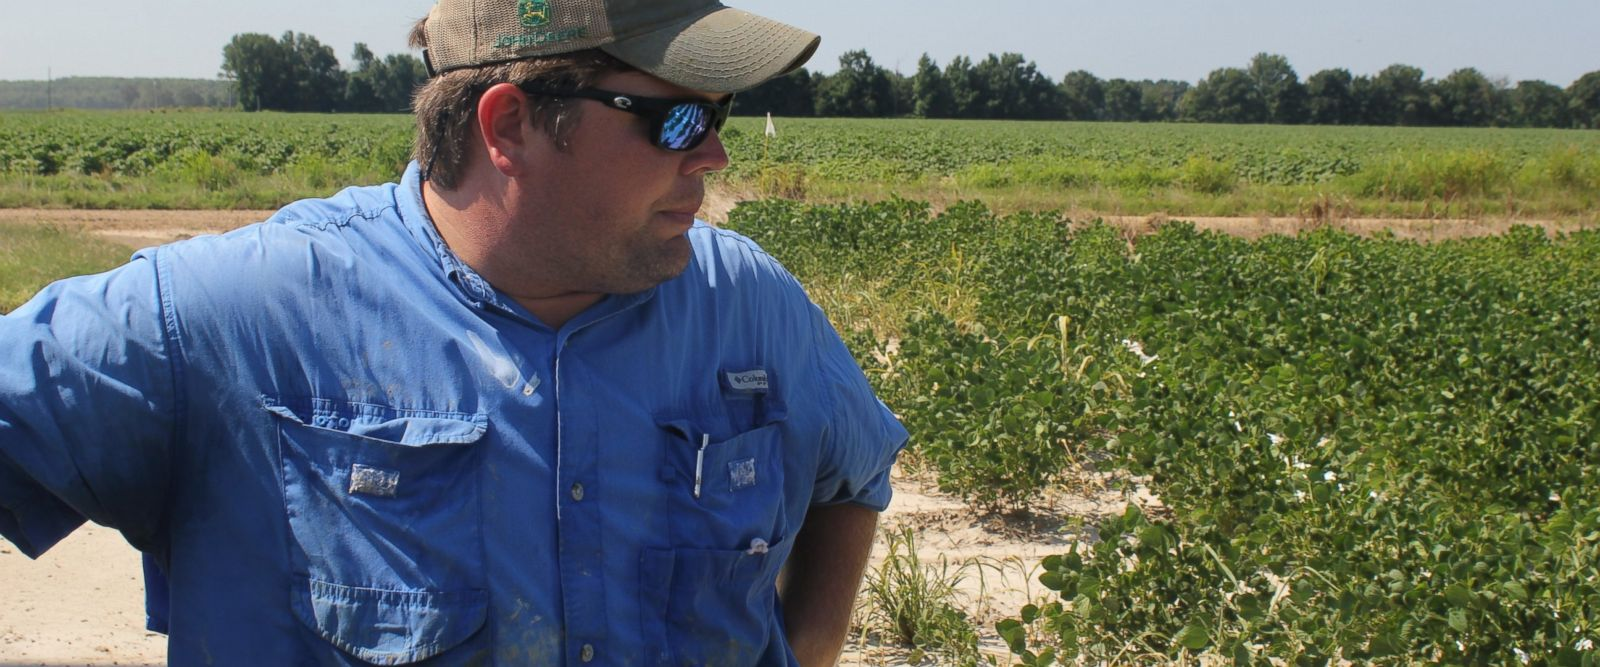 In this Tuesday, July 11, 2017, photo, East Arkansas soybean farmer Reed Storey looks at his field in Marvell, Ark. Storey said half of his soybean crop has shown damage from dicamba, an herbicide that has drifted onto unprotected fields and spawned